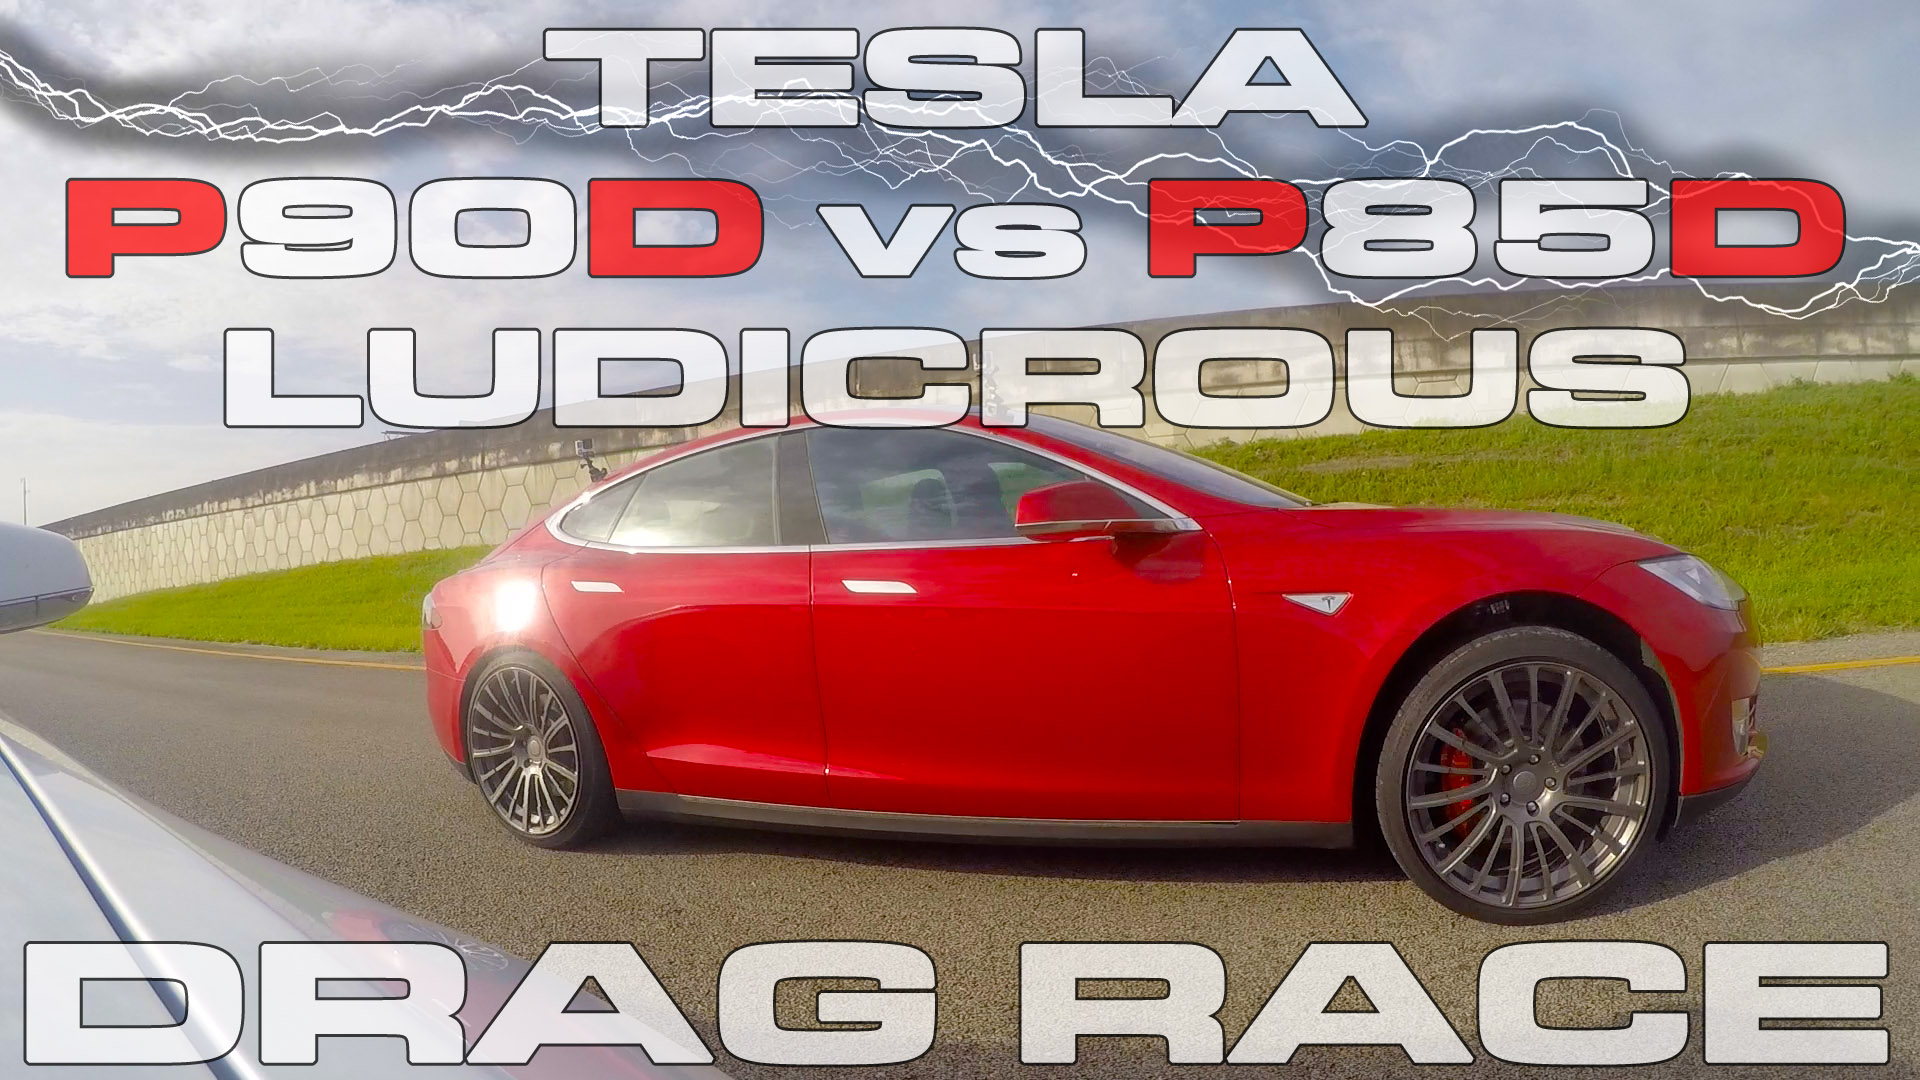 Tesla-P90D-vs-P85D-Ludicrous-Drag-Racing